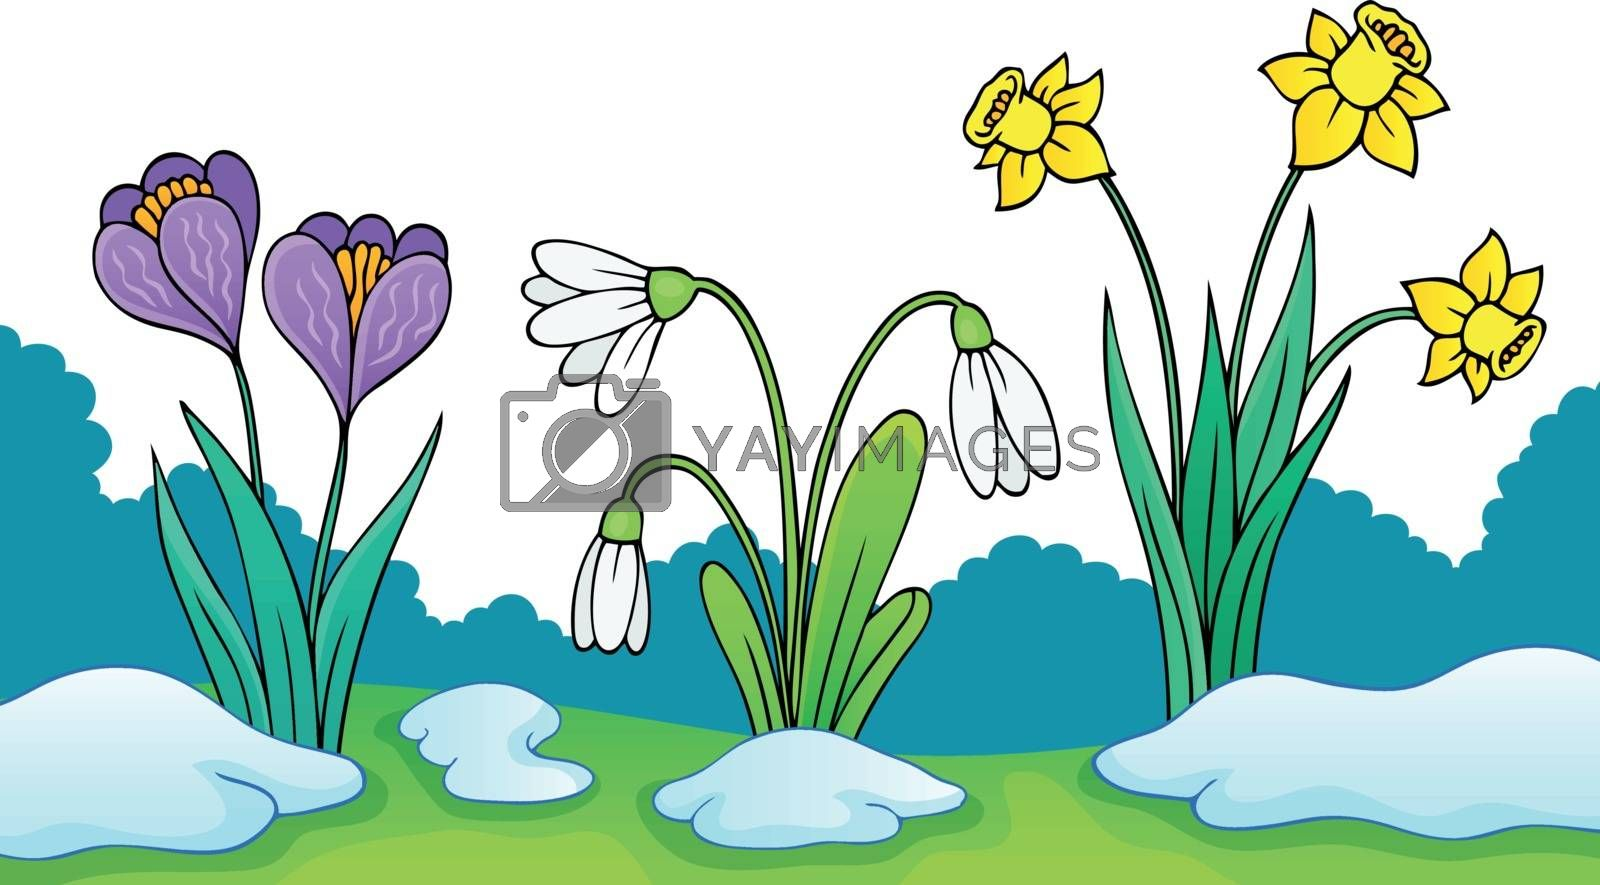 Early spring flowers theme image 2 - eps10 vector illustration.